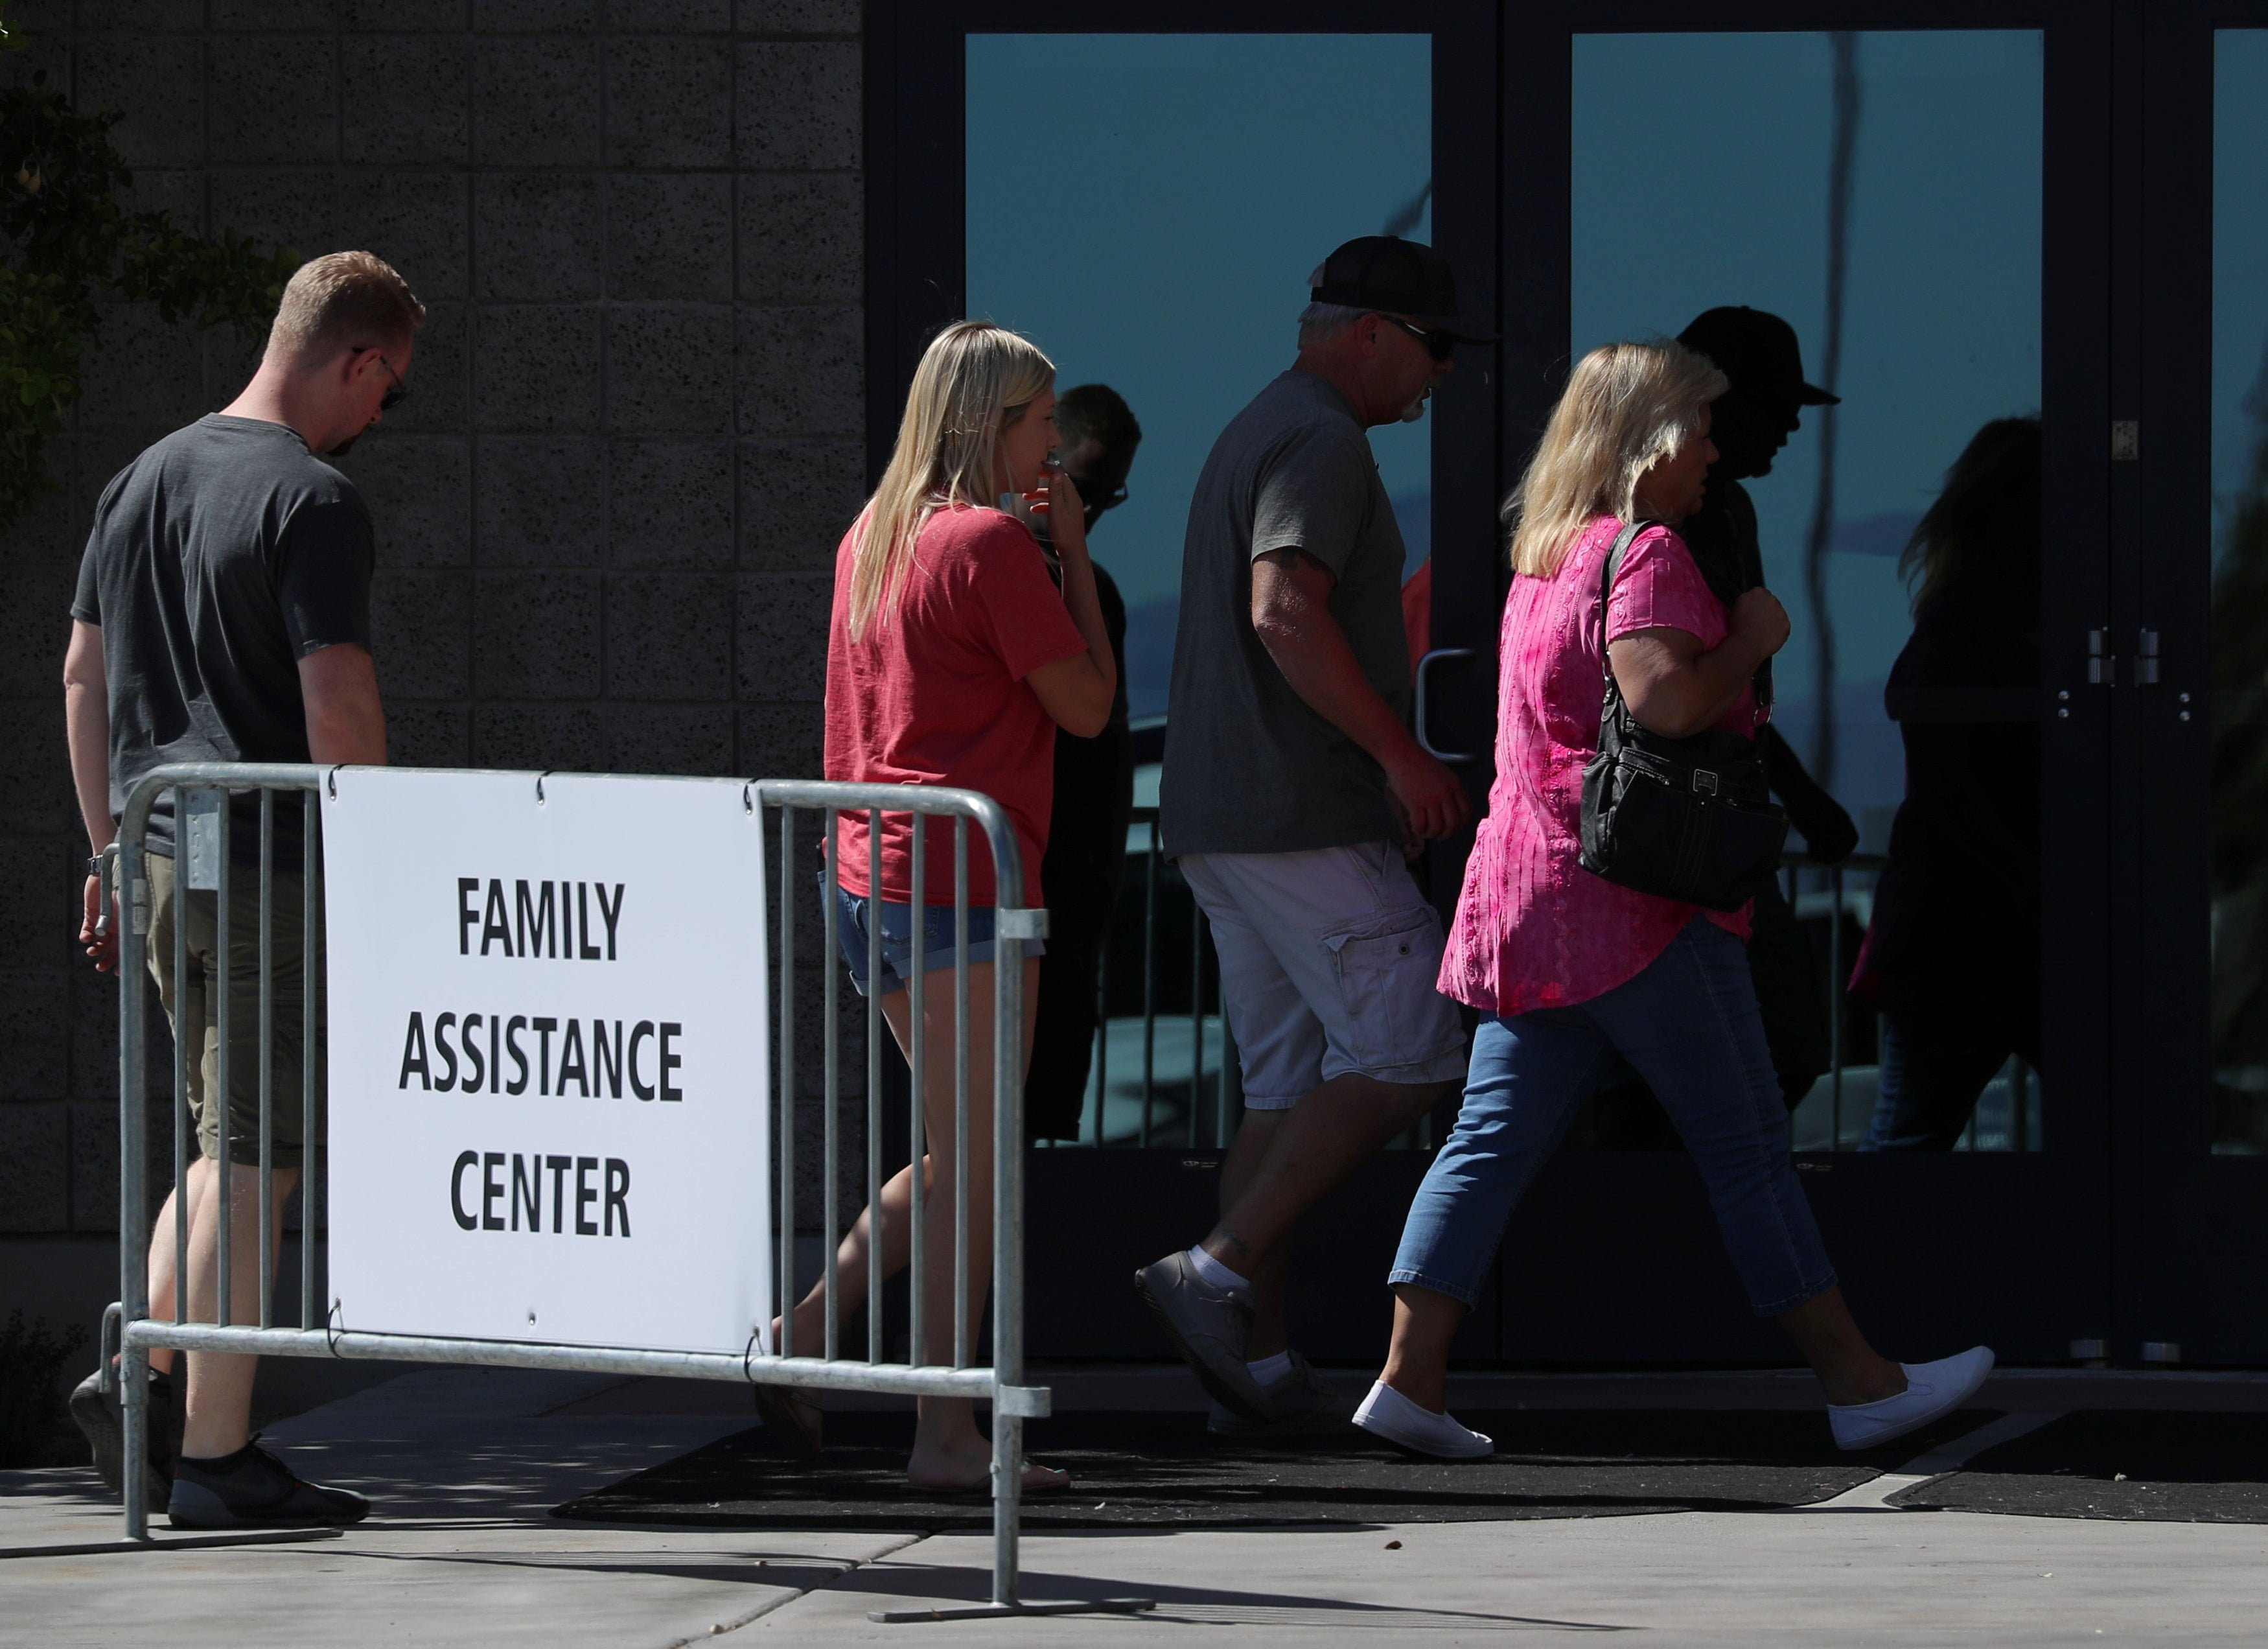 People enter the Family Assistance Center set up in the Las Vegas Convention Center in Las Vegas